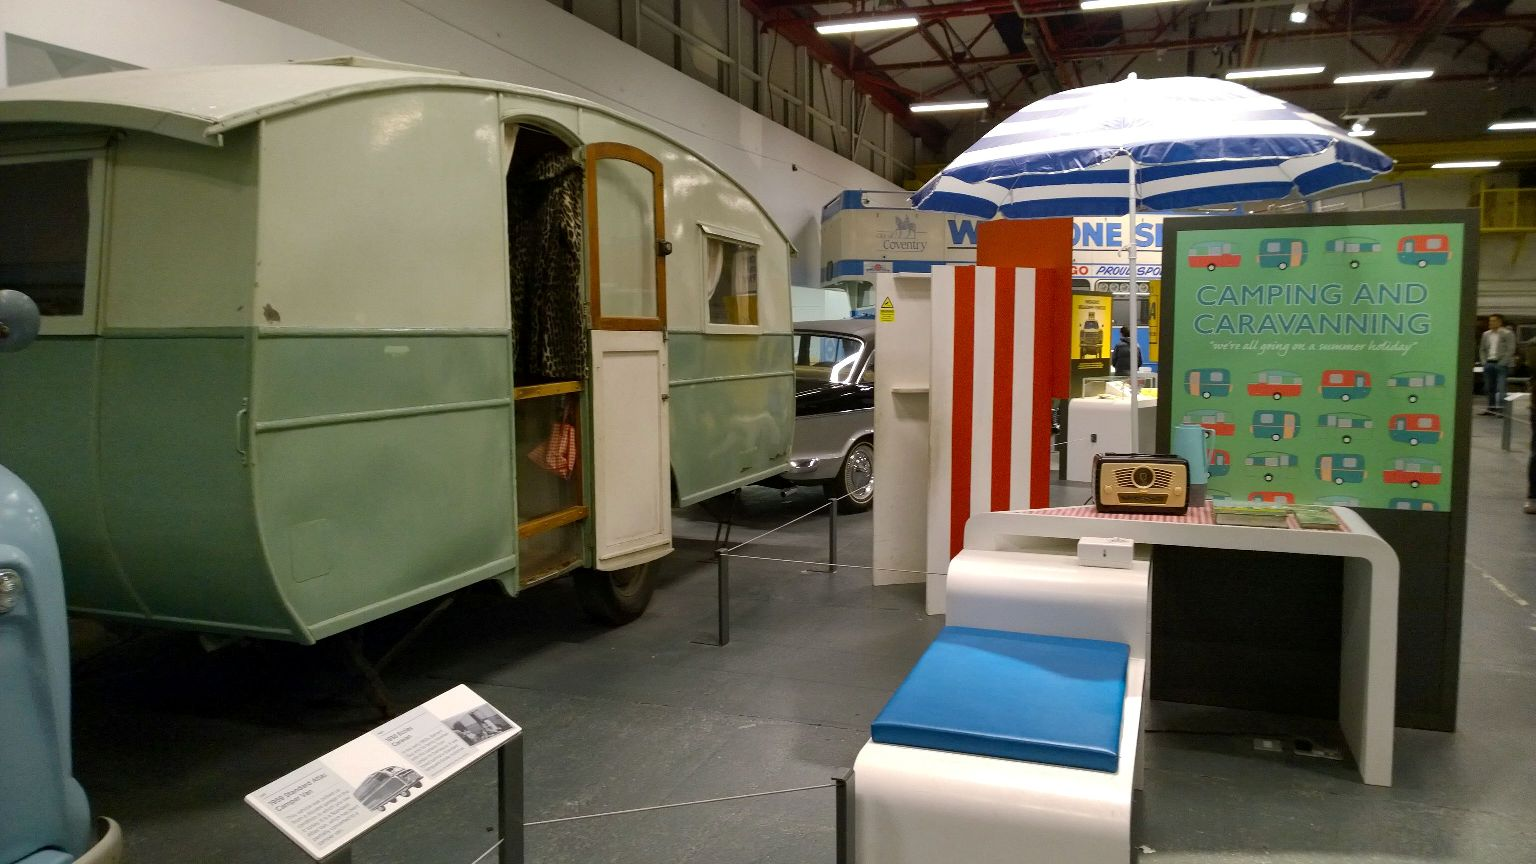 camping-muzeum-transportu-coventry